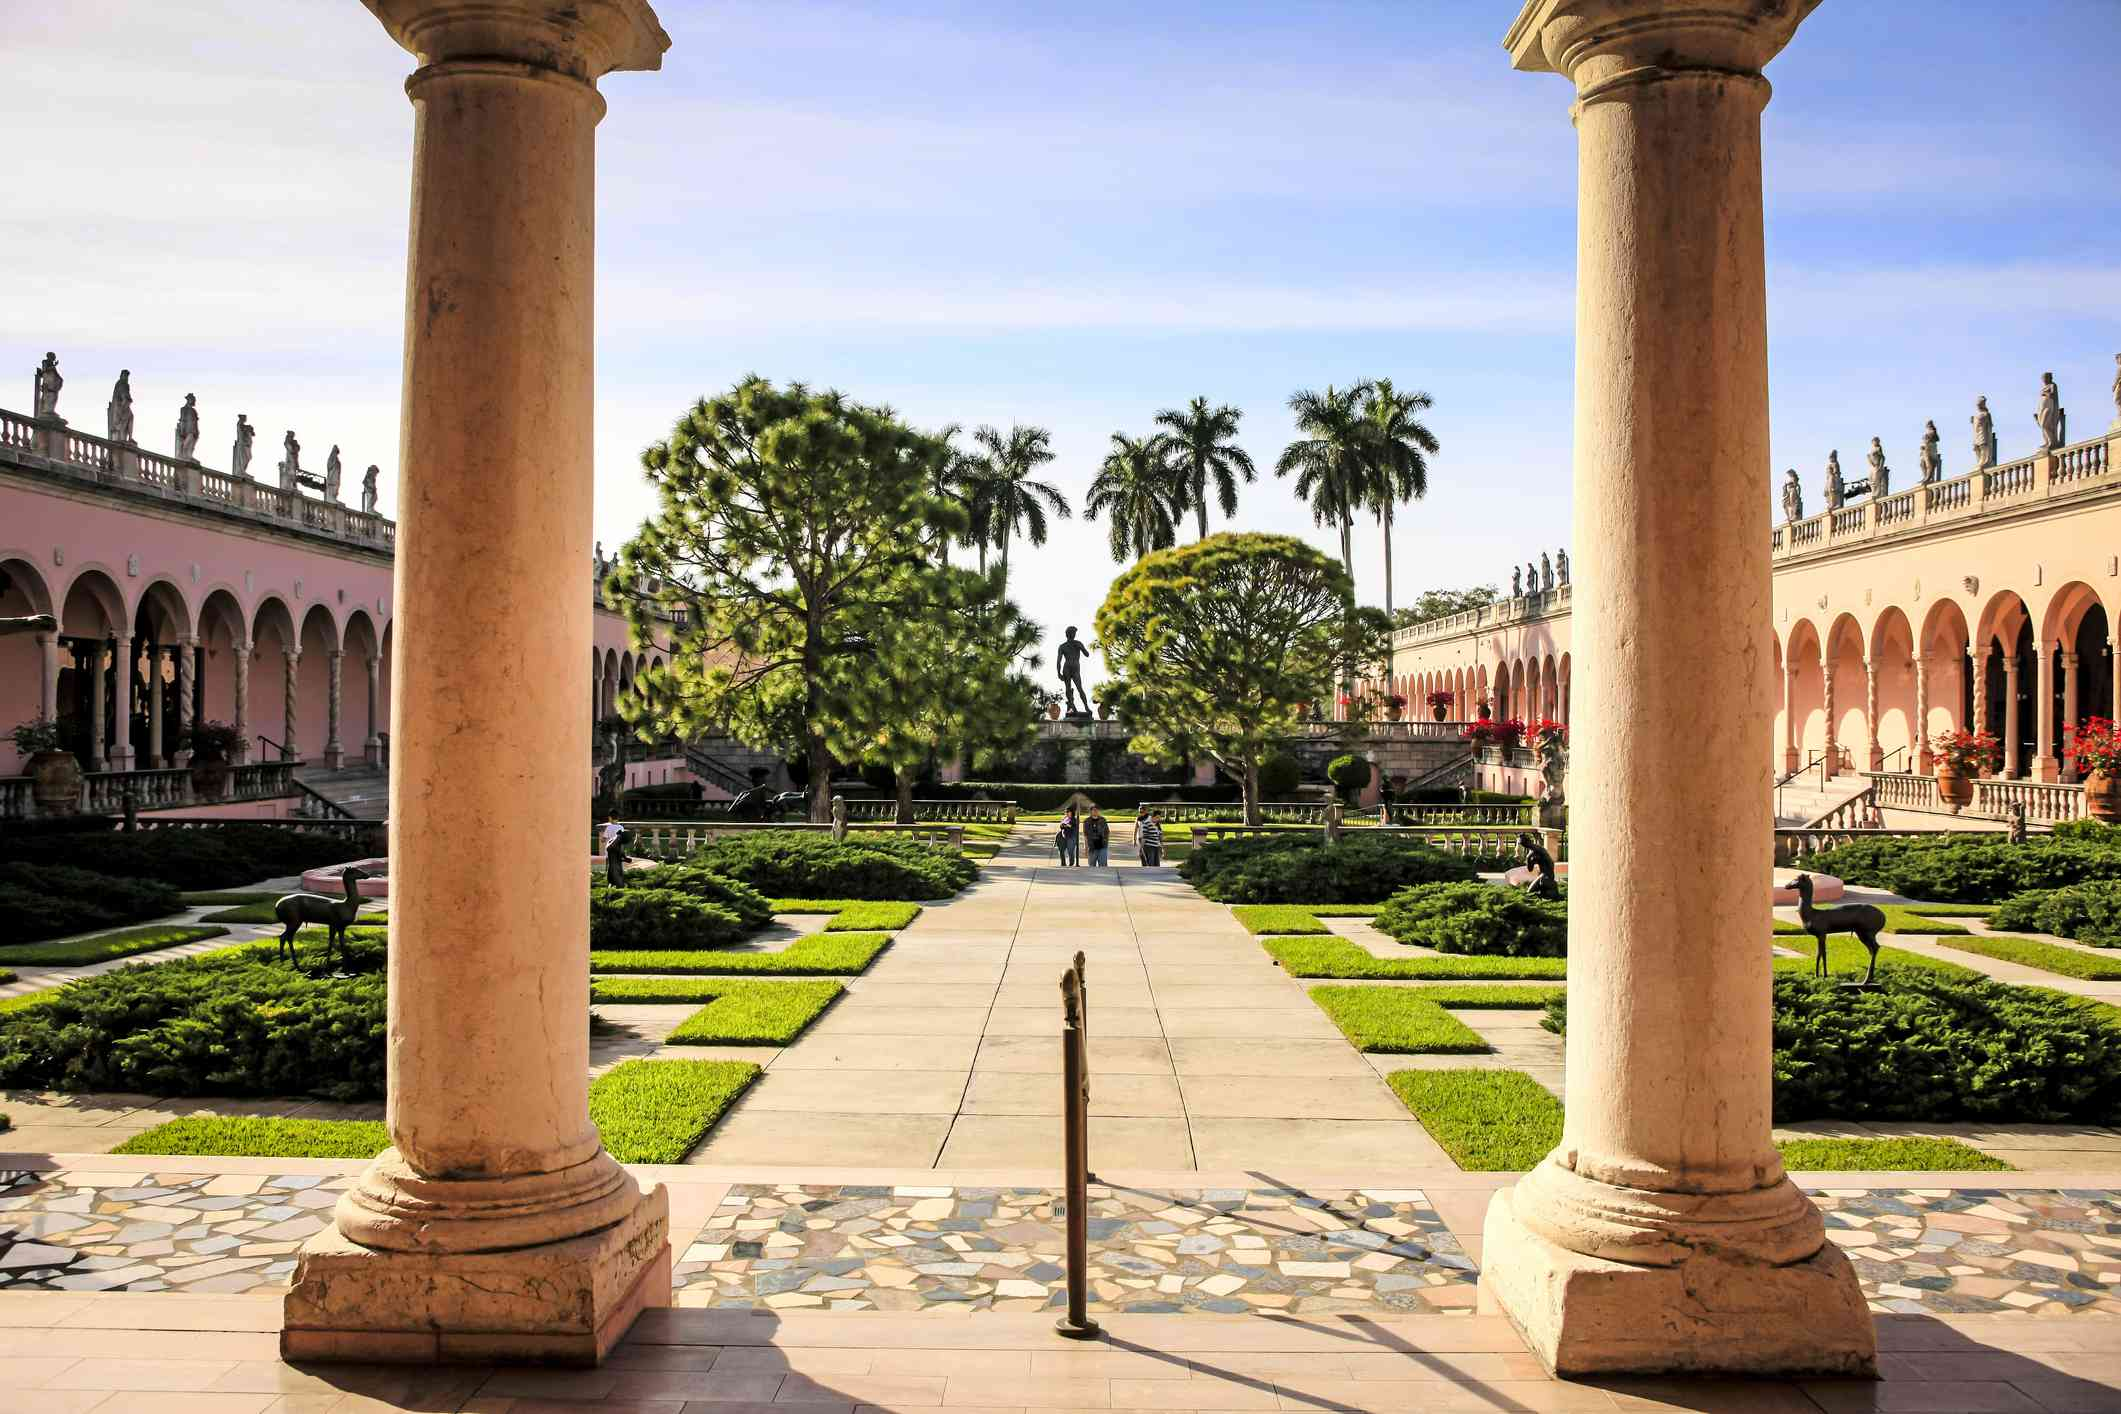 Courtyard and columns at the Ringling Museum in Sarasota, Florida